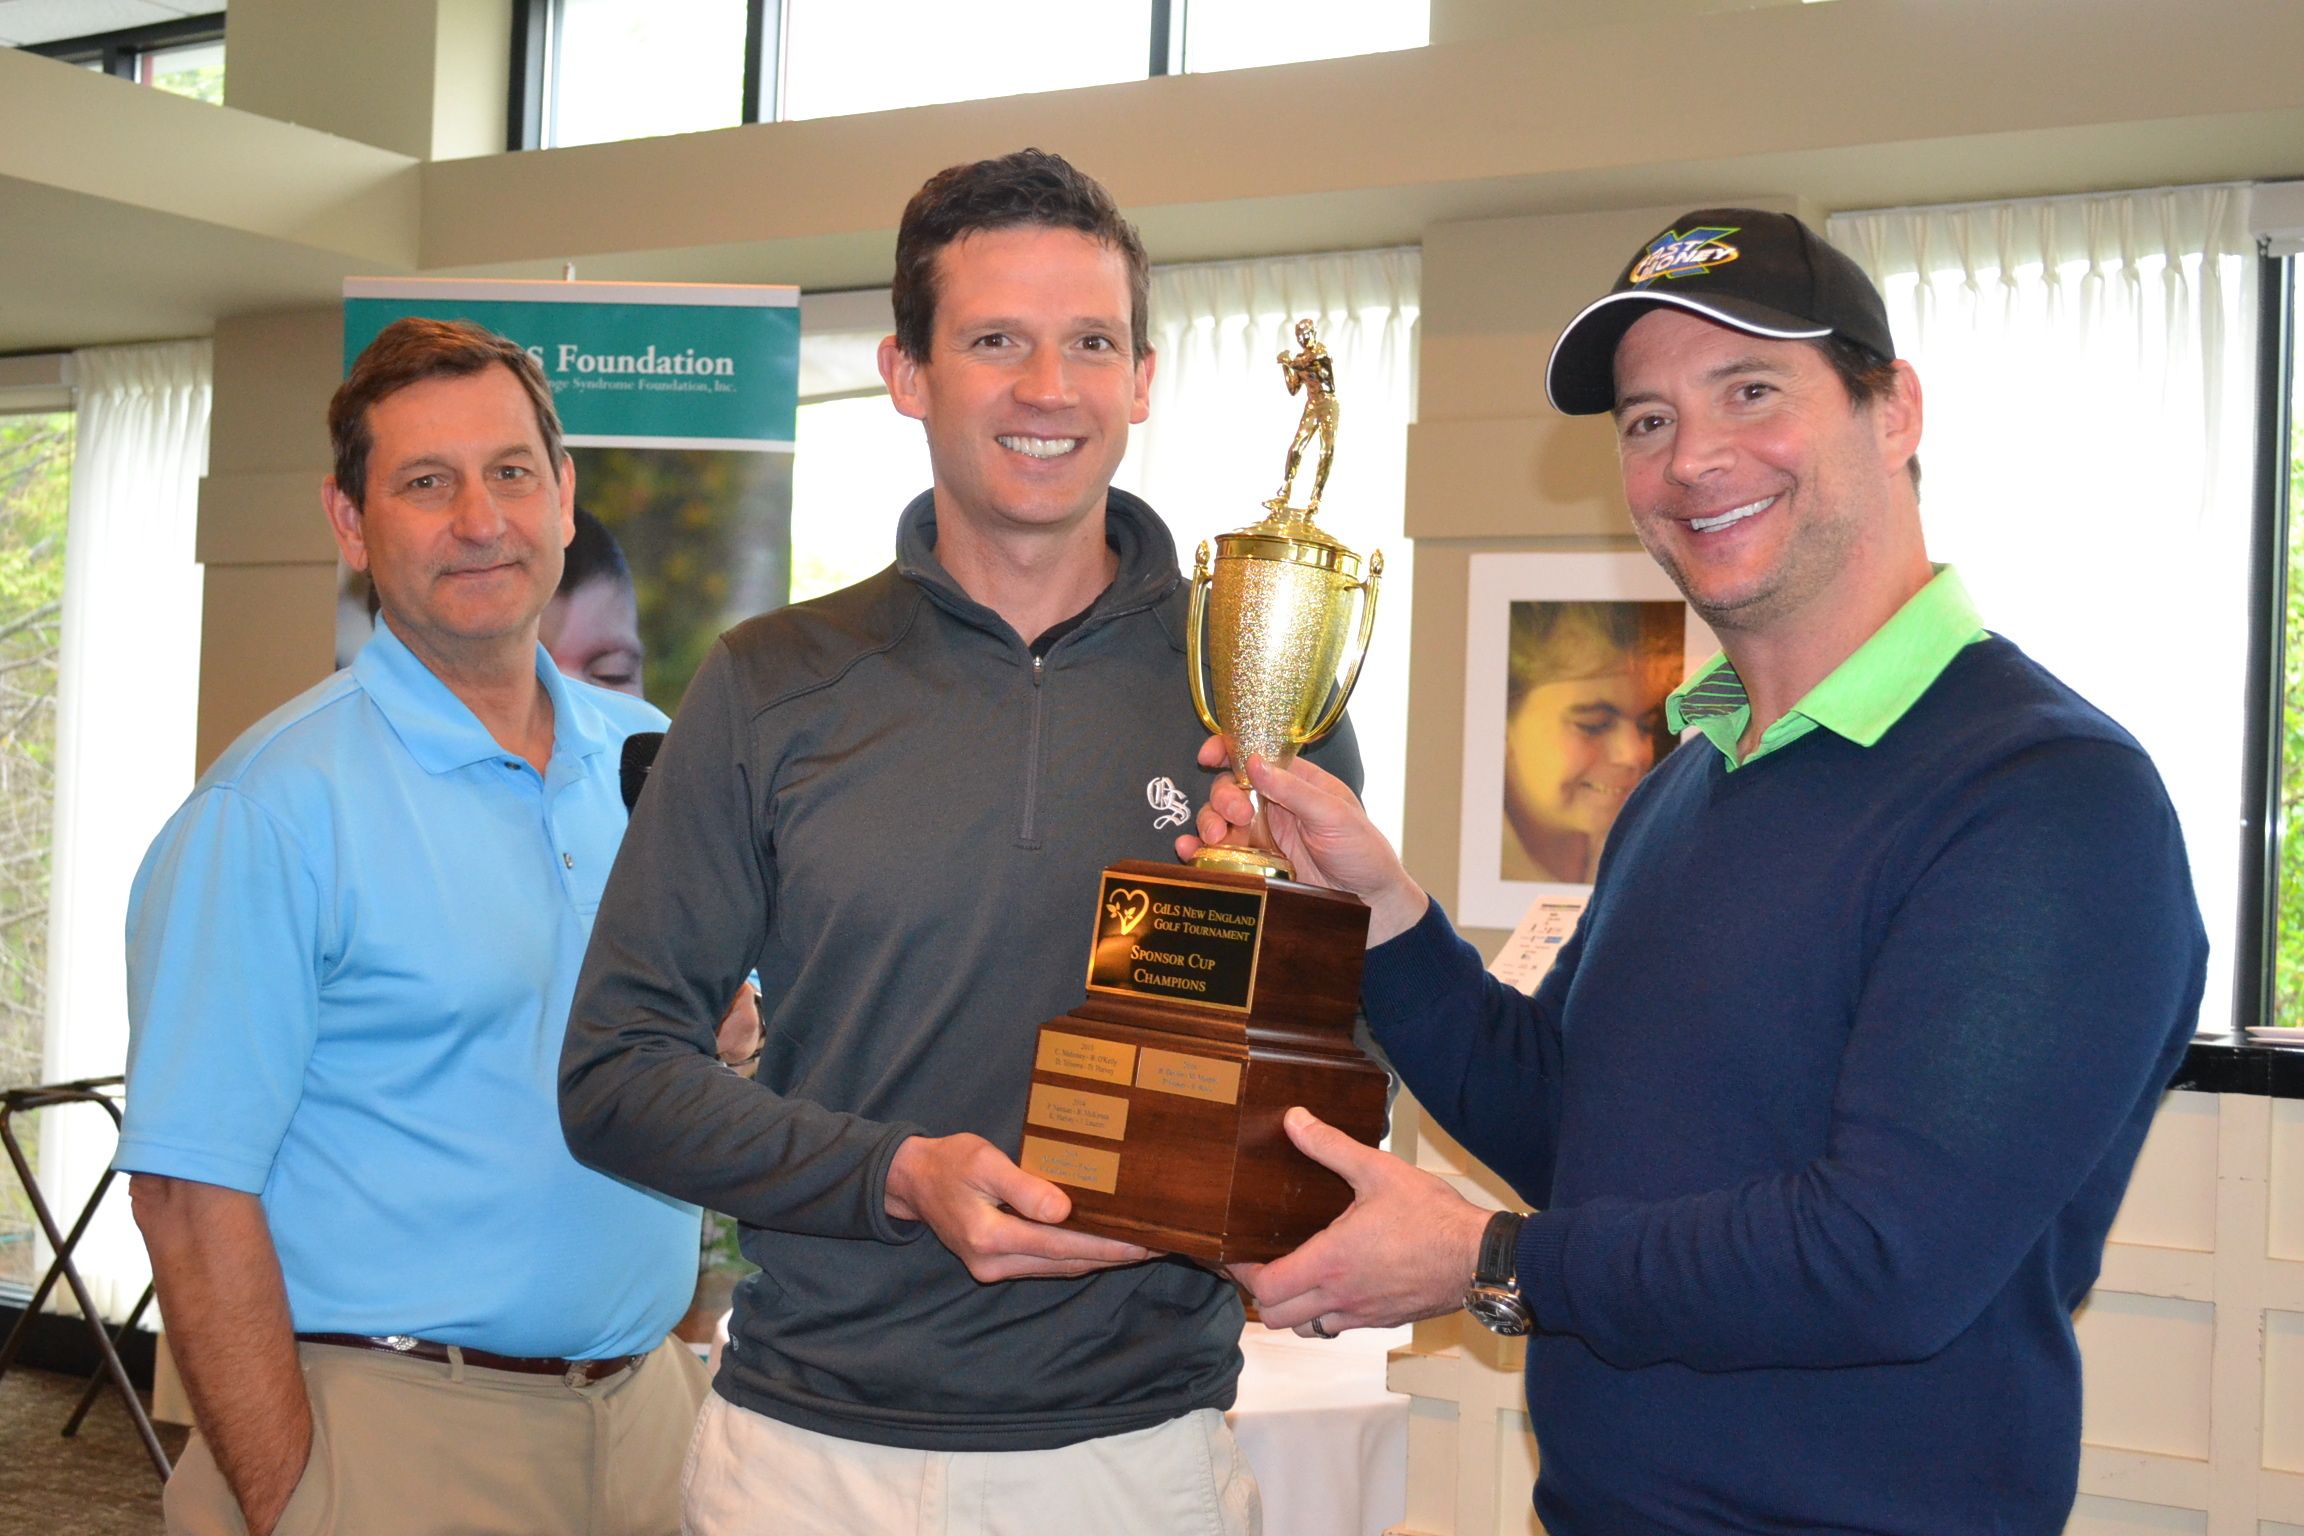 CdLS Foundation New England Golf Classic gallery image #6